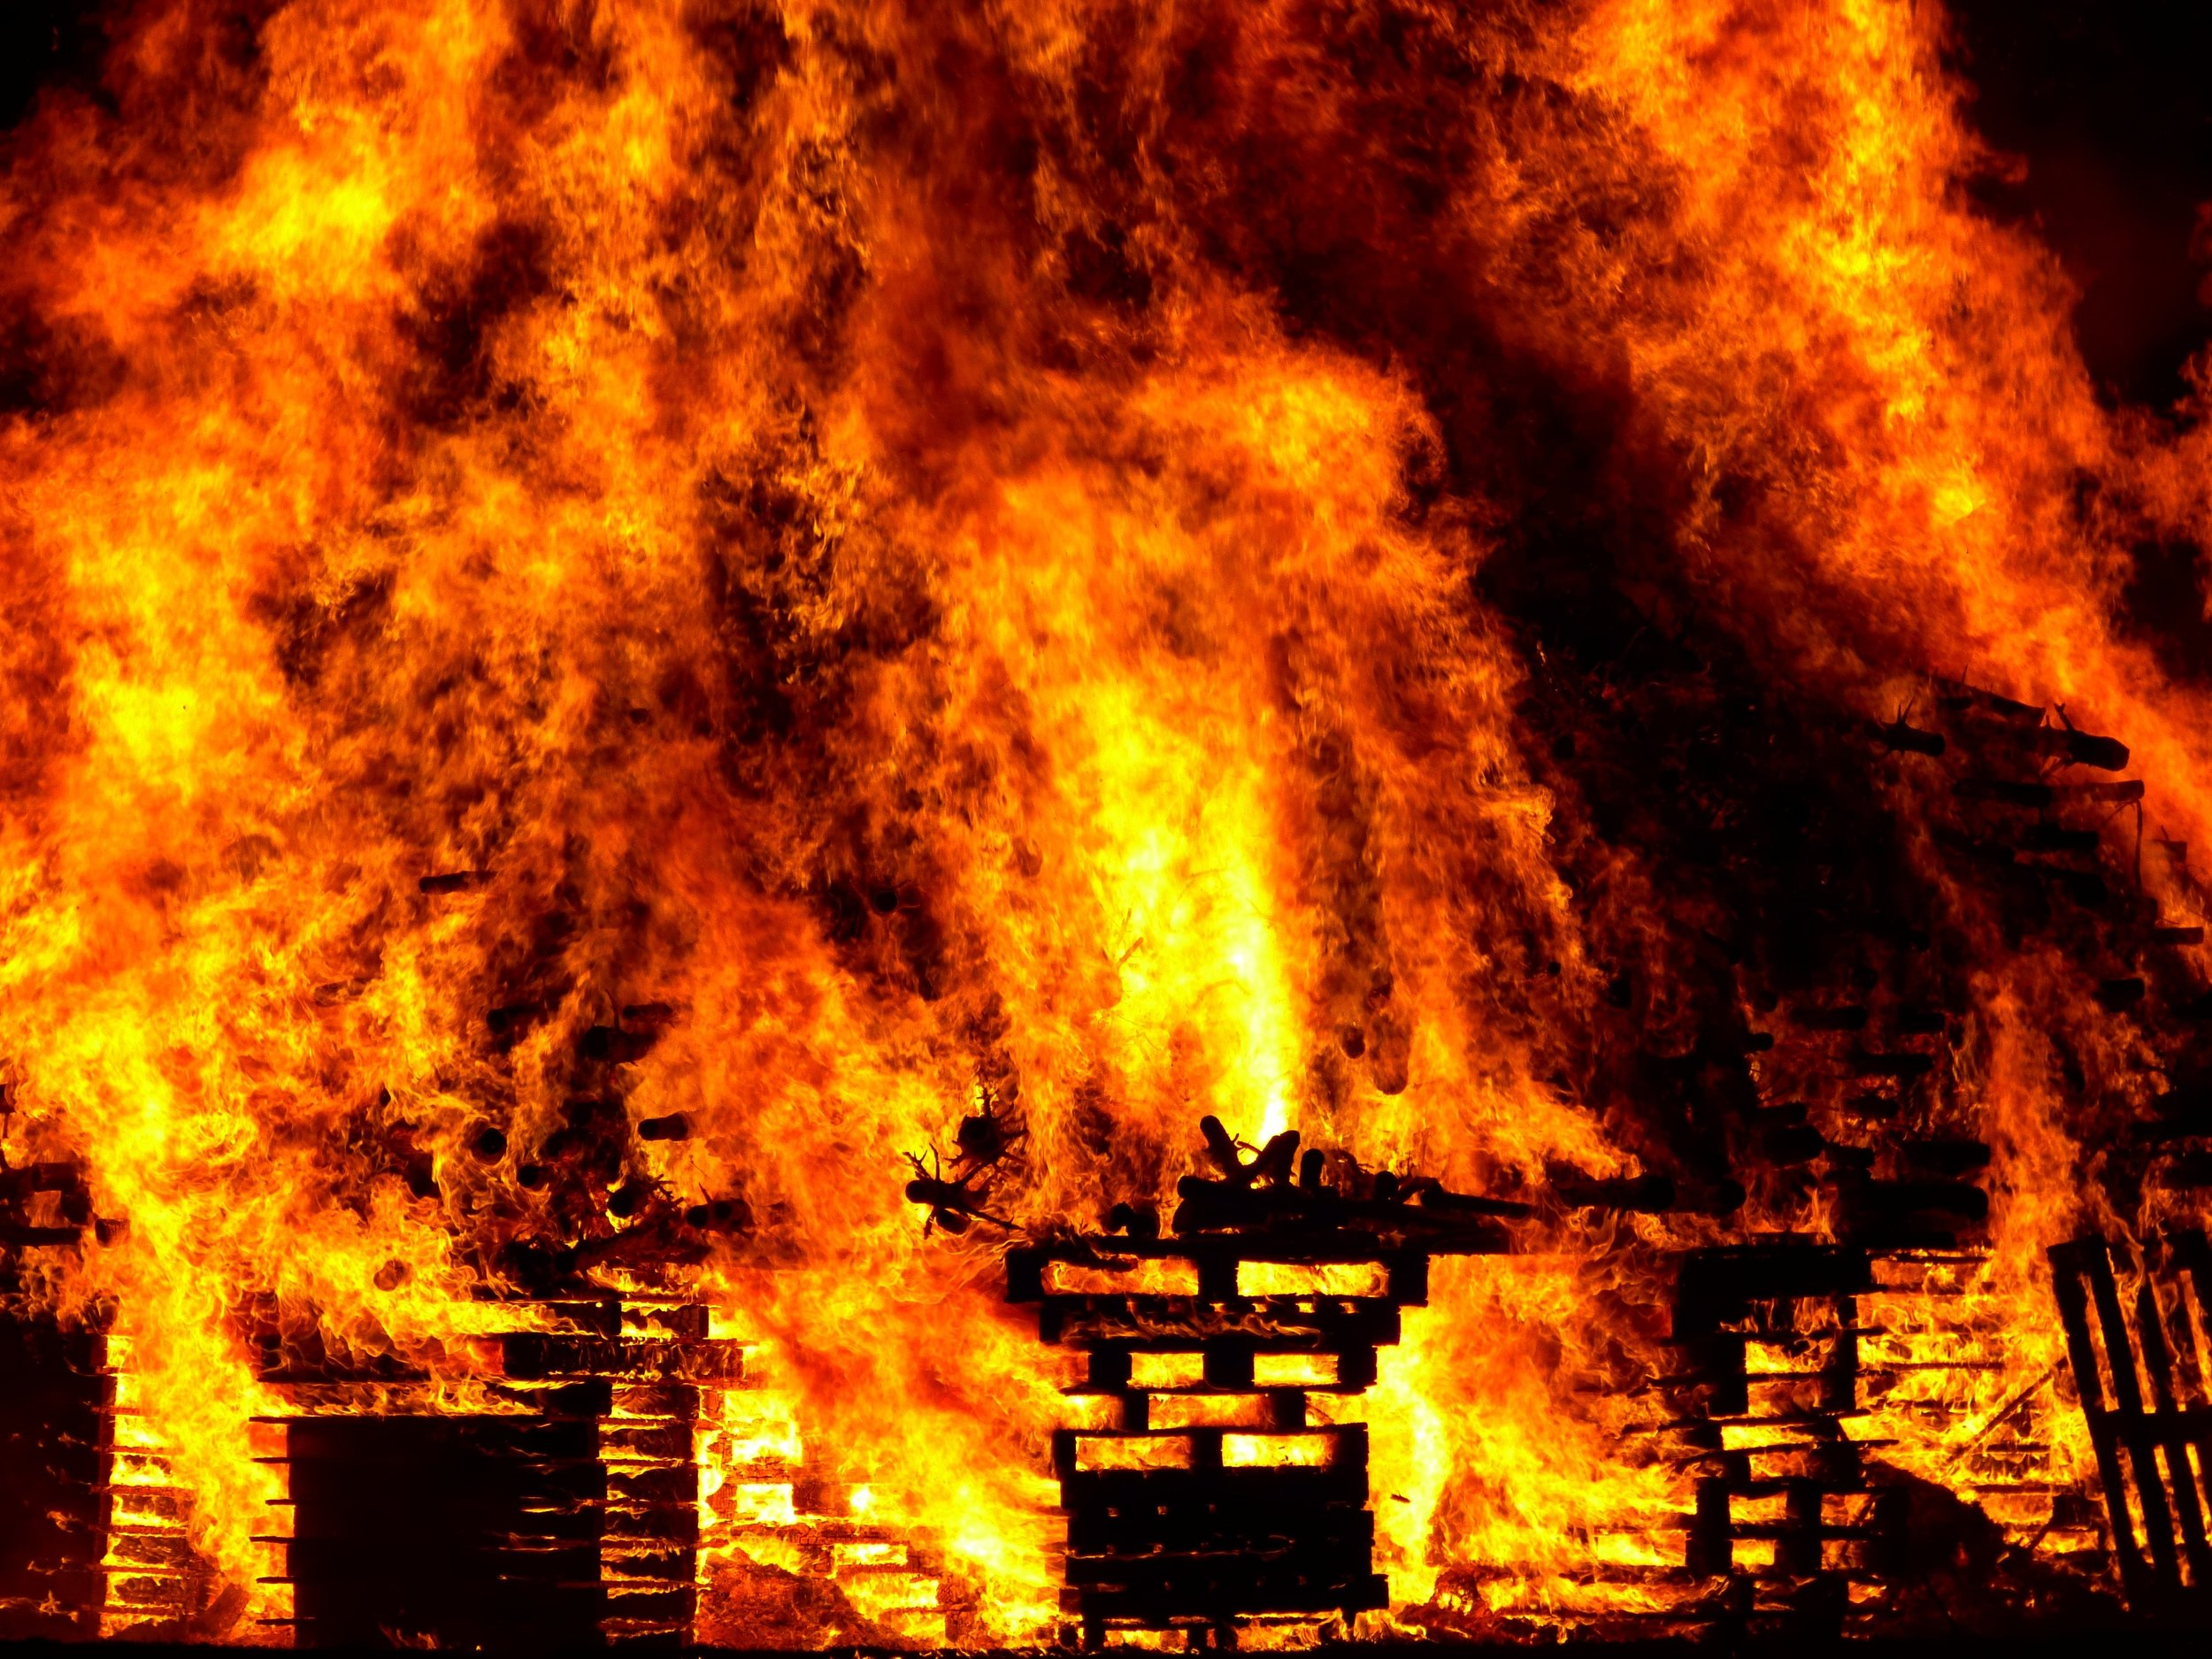 accident-burning-color-57461.jpg